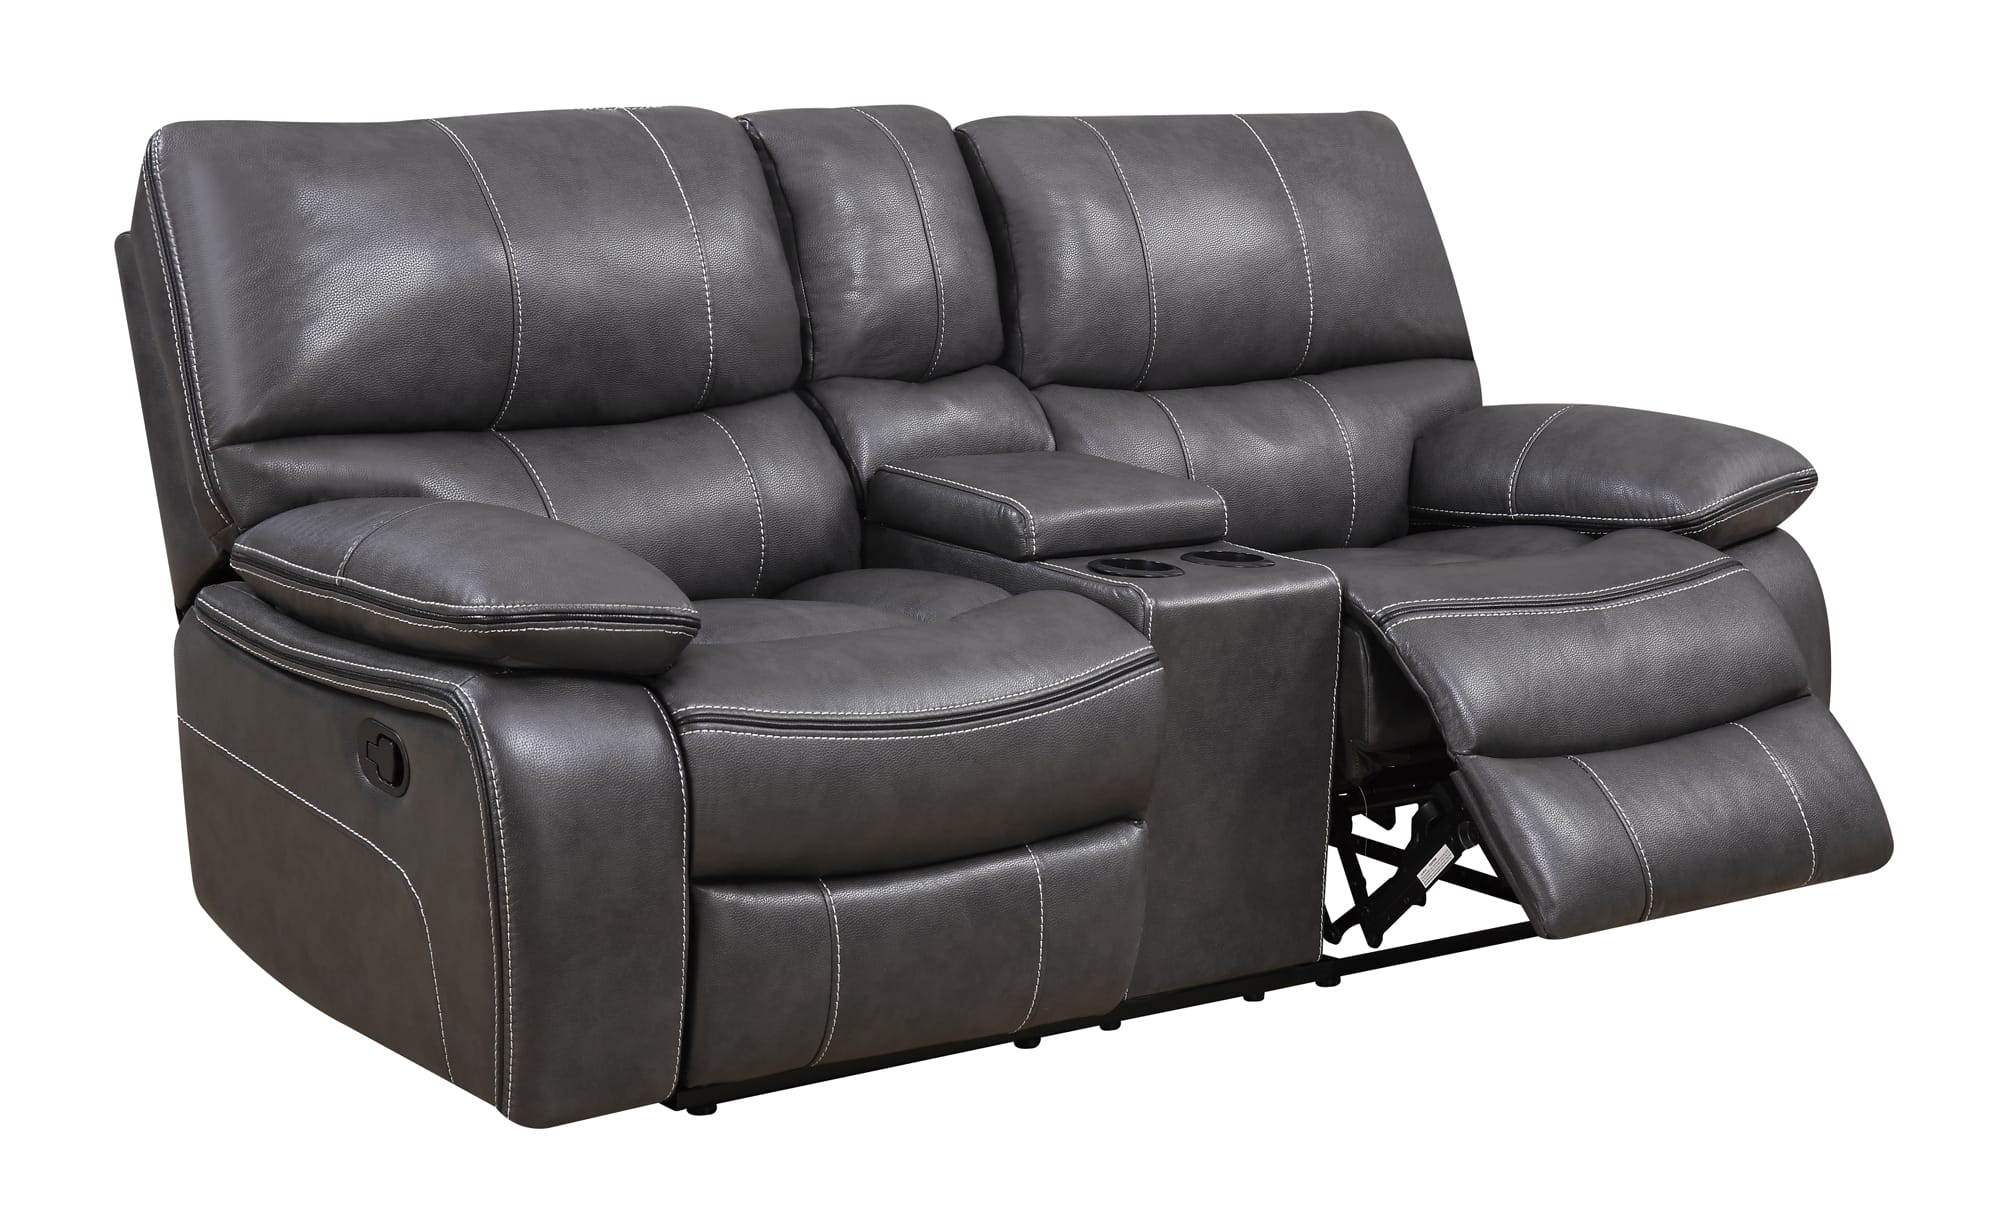 Gray Recliner Chair U0040 Grey Black Leather Console Reclining Loveseat By